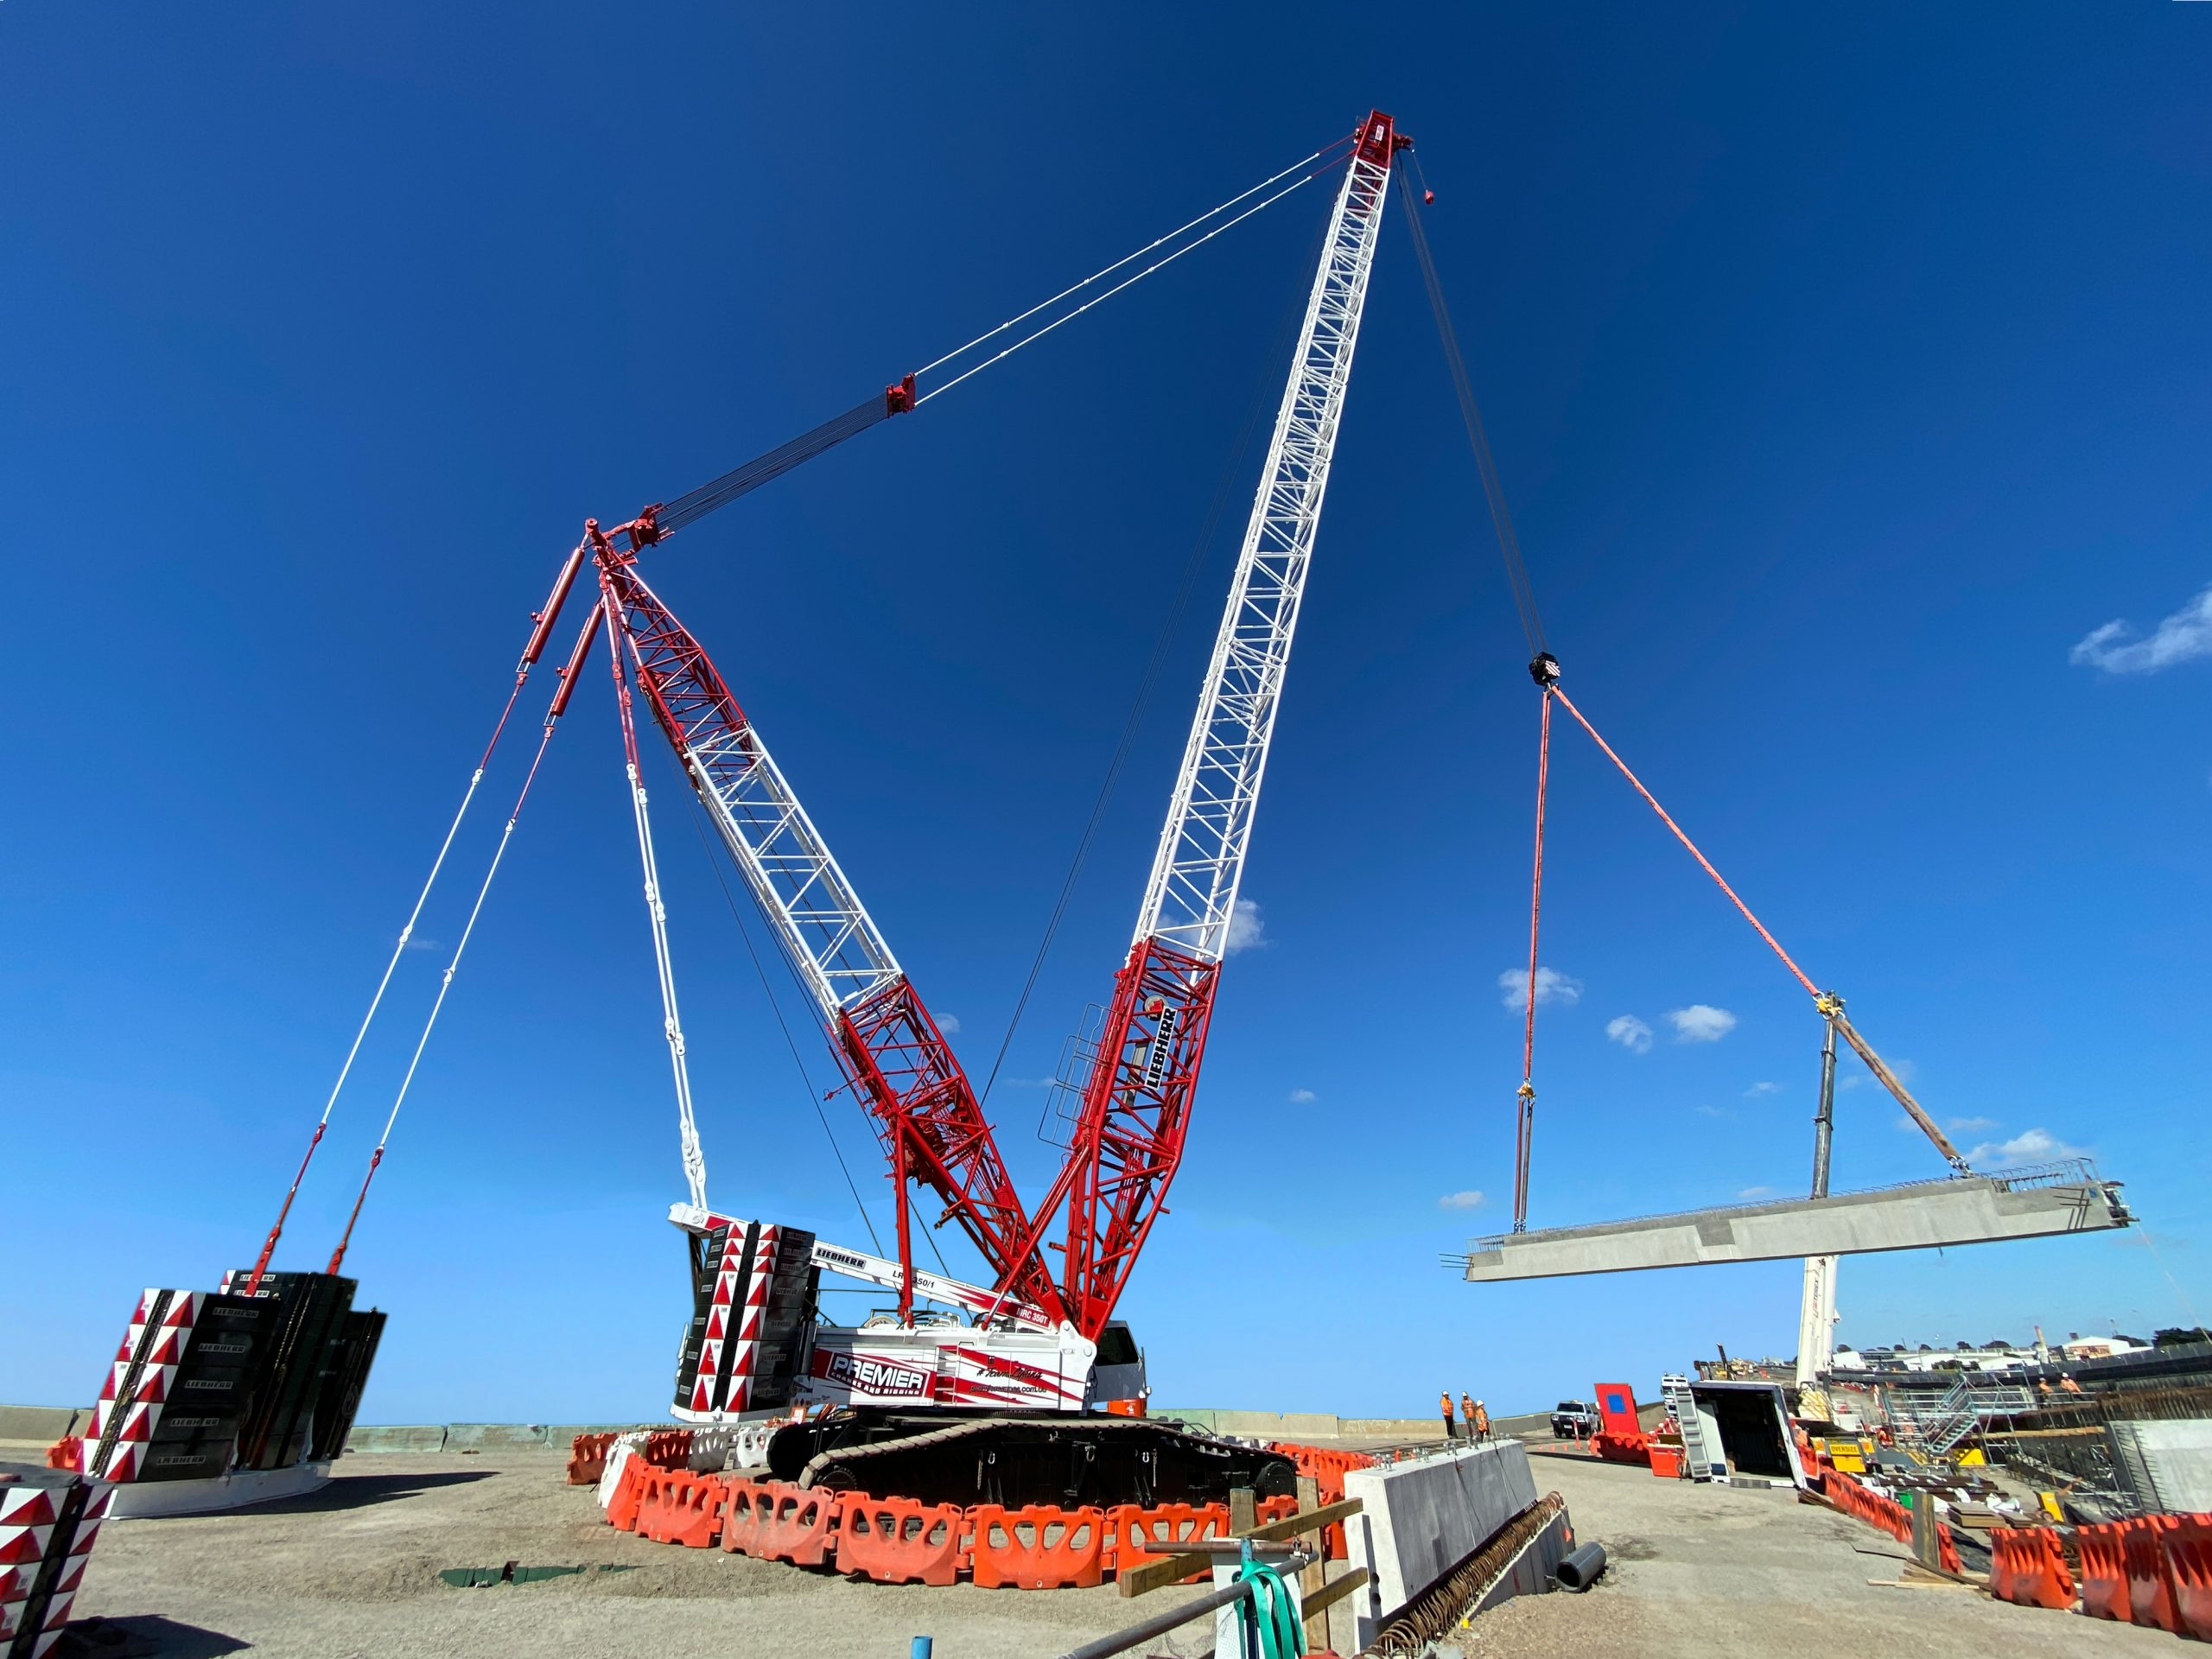 Premier Cranes cracking the code with #TeamLifting